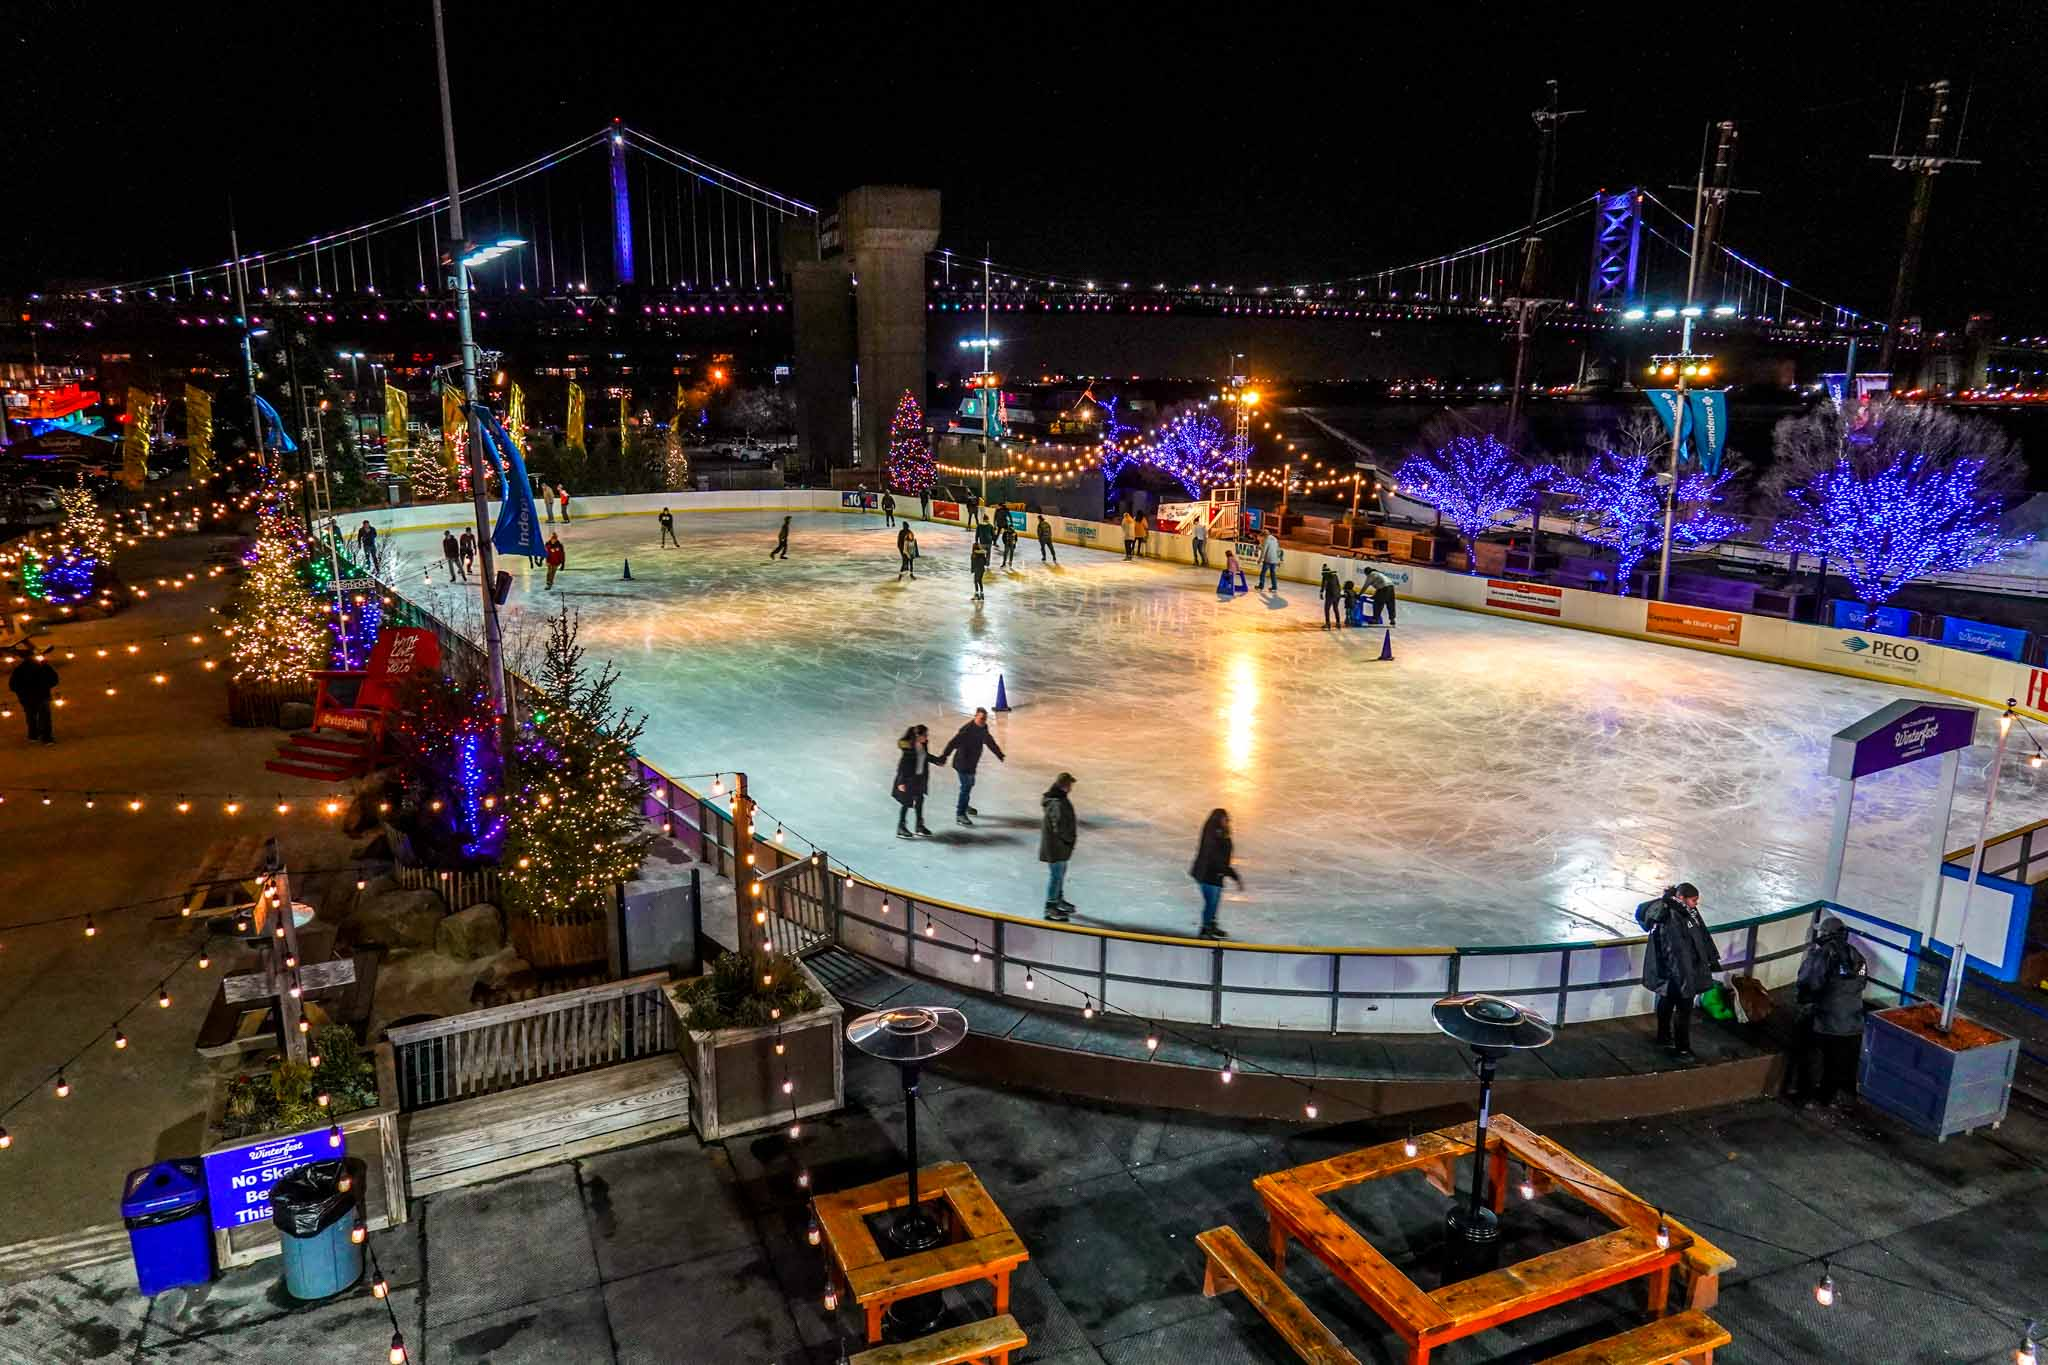 People on ice skating rink surrounded by Christmas lights